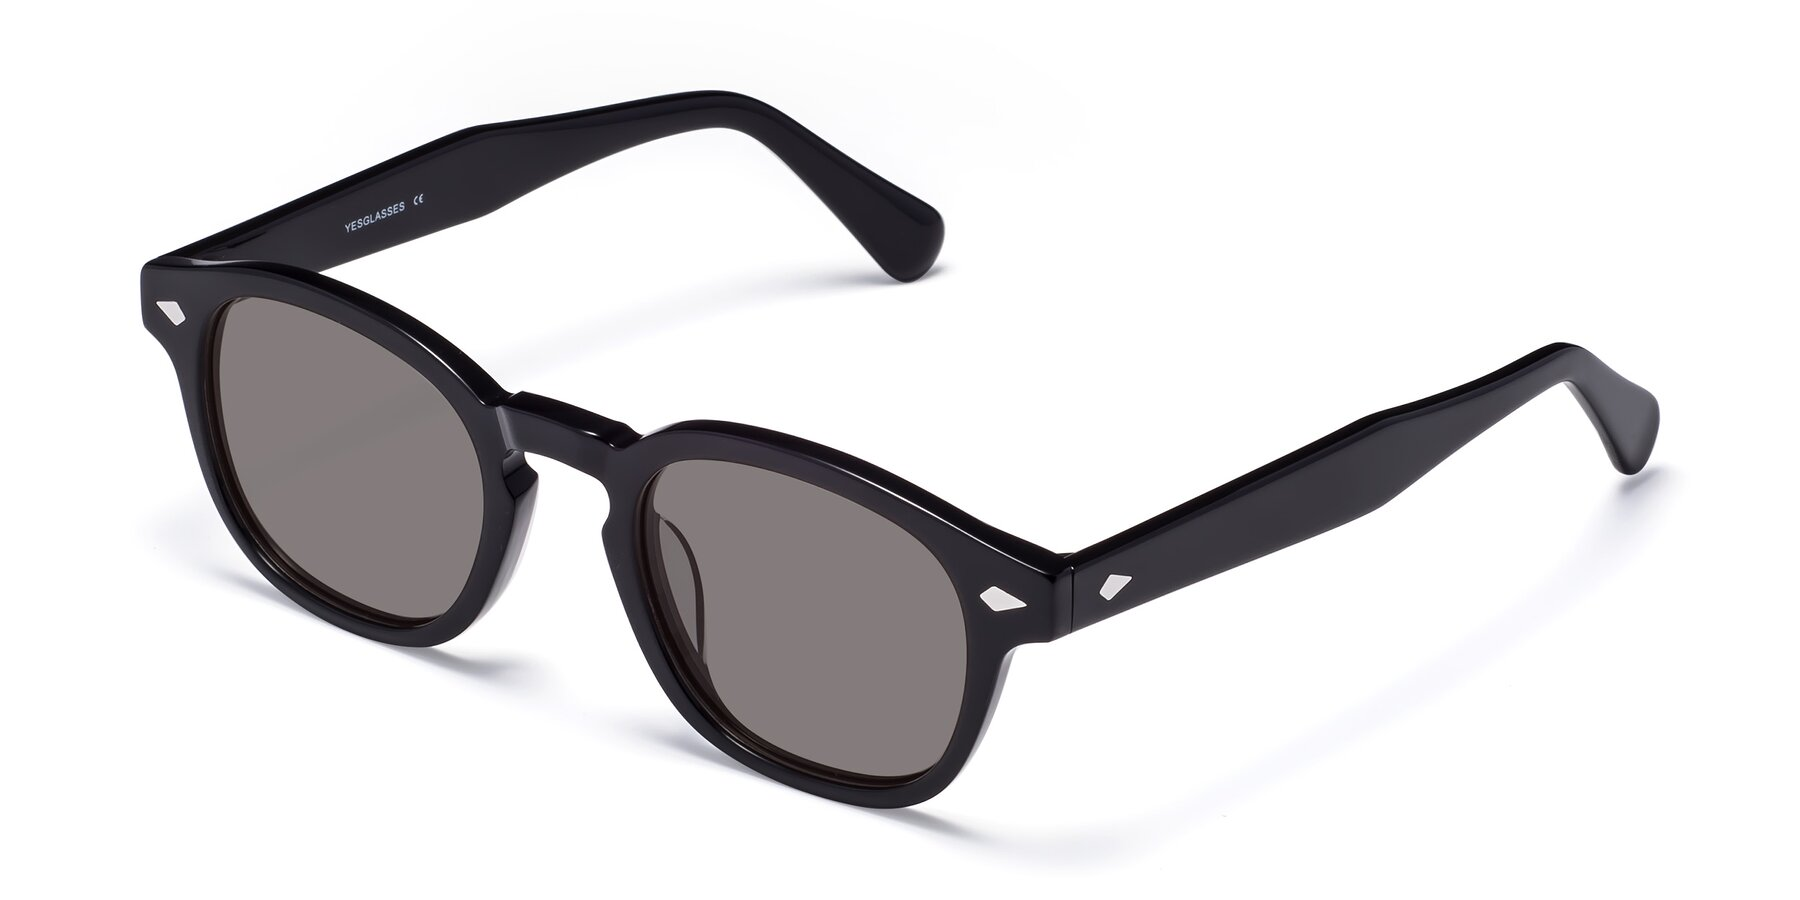 Angle of WALL-E in Black with Medium Gray Tinted Lenses